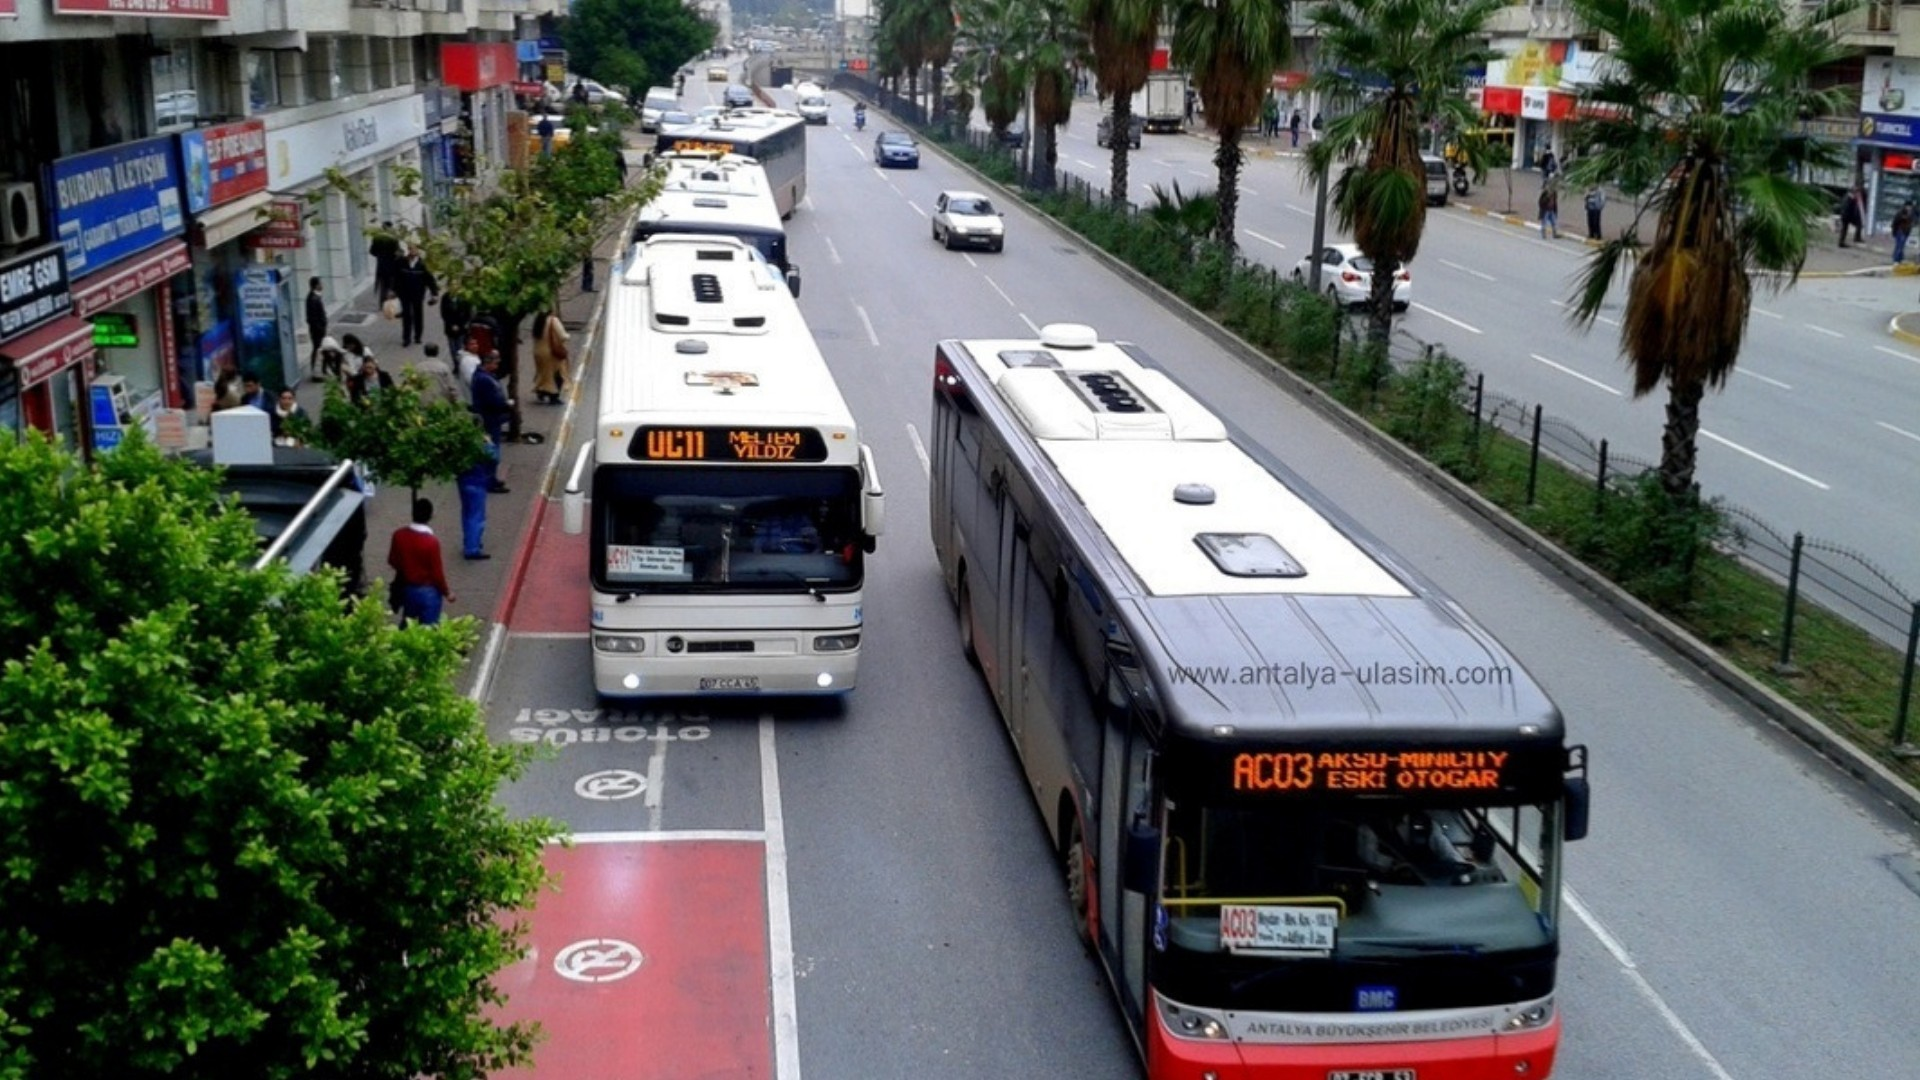 What is the best way to get around Alanya